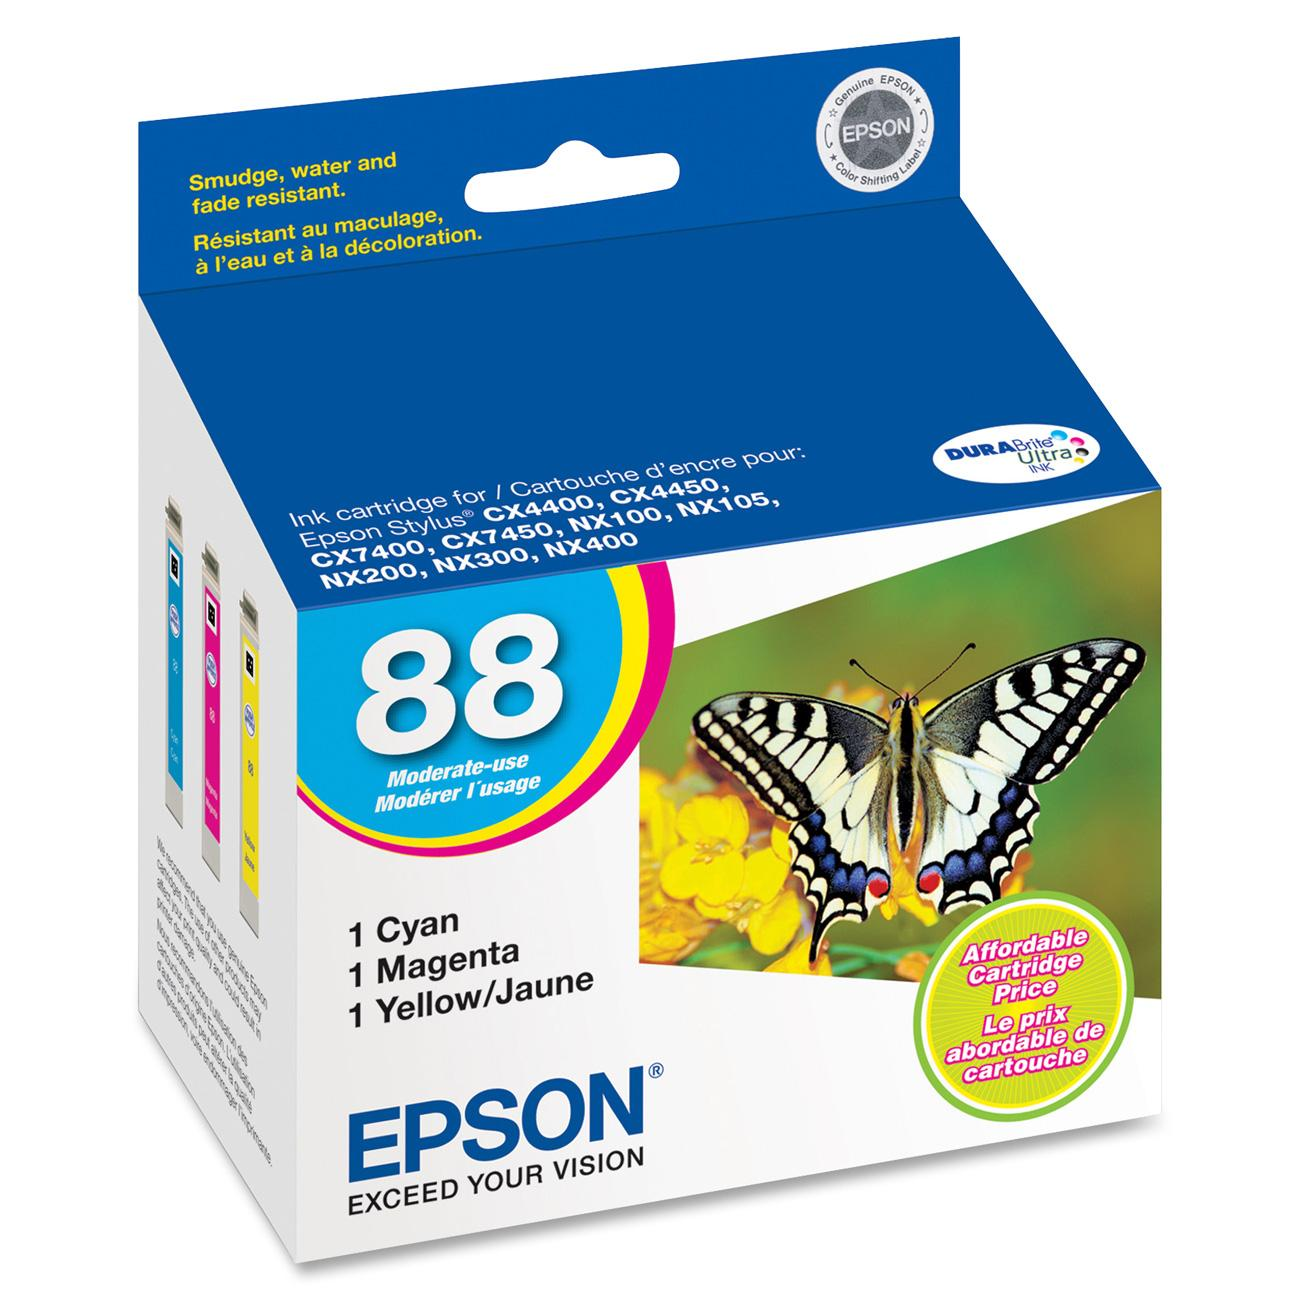 Epson, EPST088520, T088120/220/320/420/520 Ink Cartridges, 1 / Pack